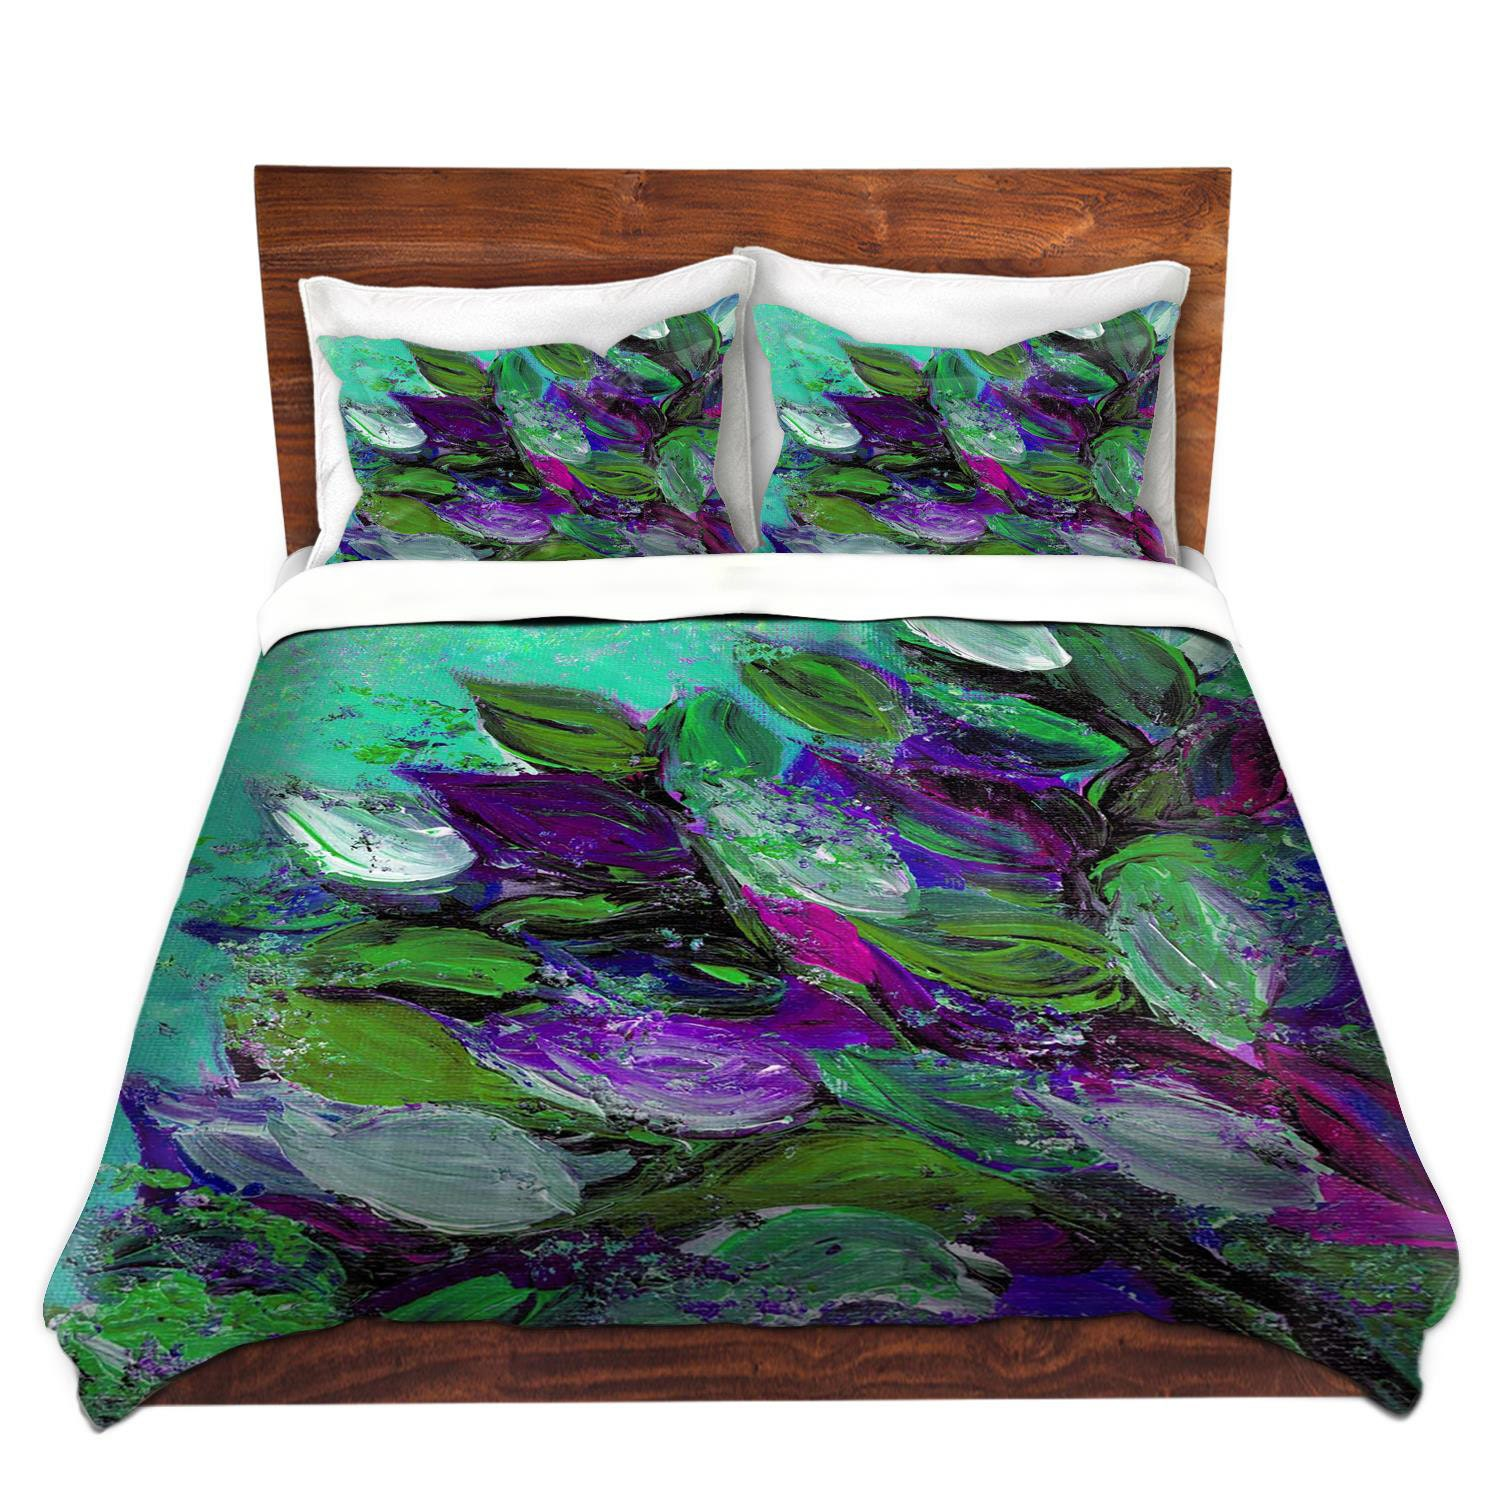 BLOOMING BEAUTIFUL Floral Art Duvet Covers King Queen Twin Size Mint  Seafoam Green Plum Purple Home Decor Bedding Garden Flowers Bedroom